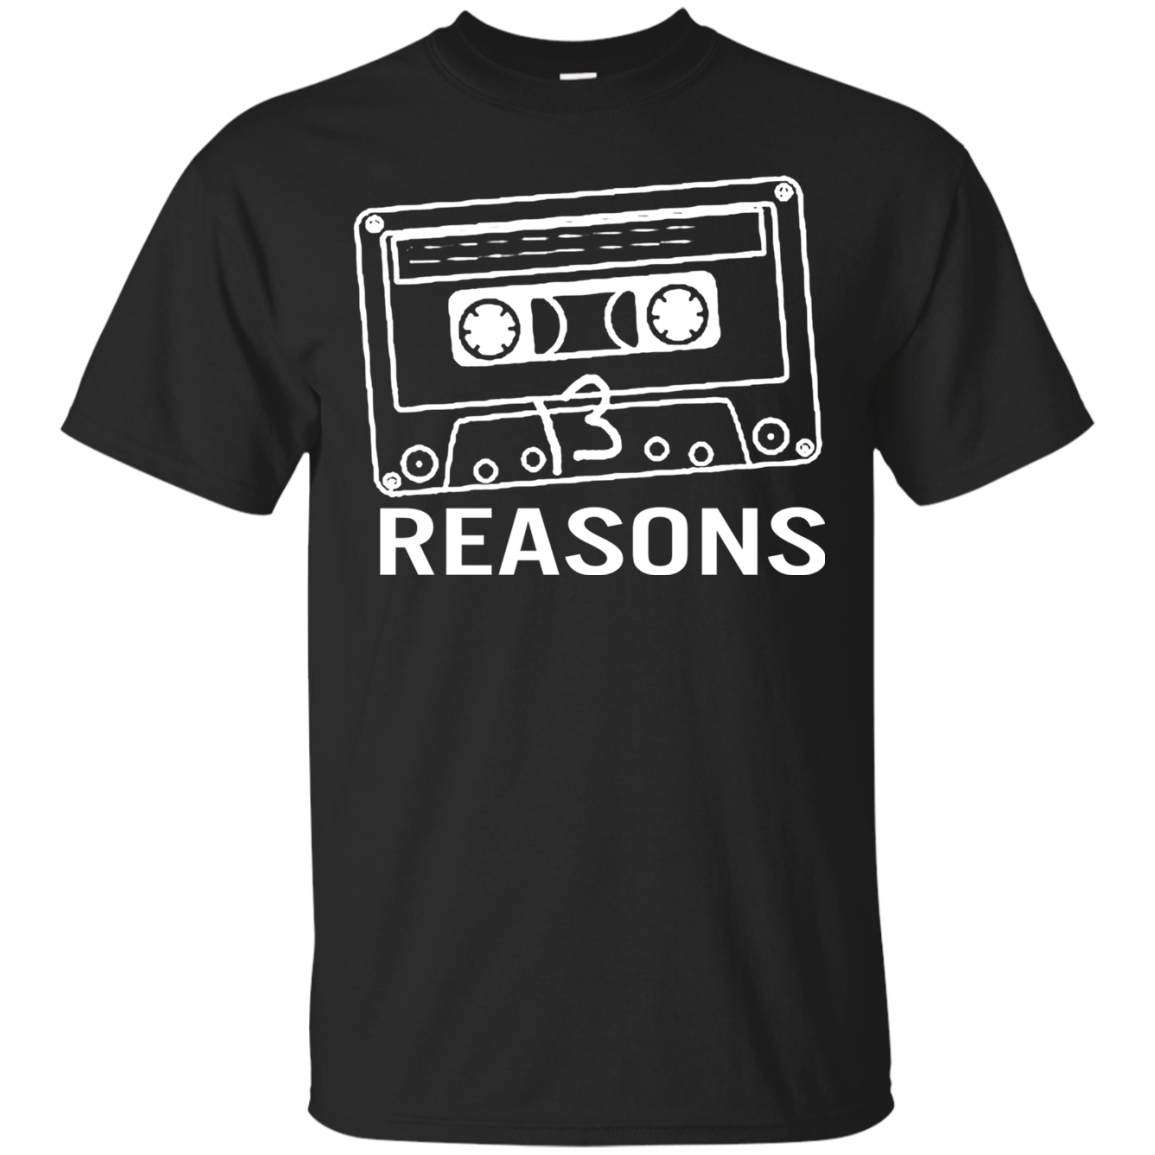 13 Reasons Why T shirts Tape Logo Hoodies Sweatshirts